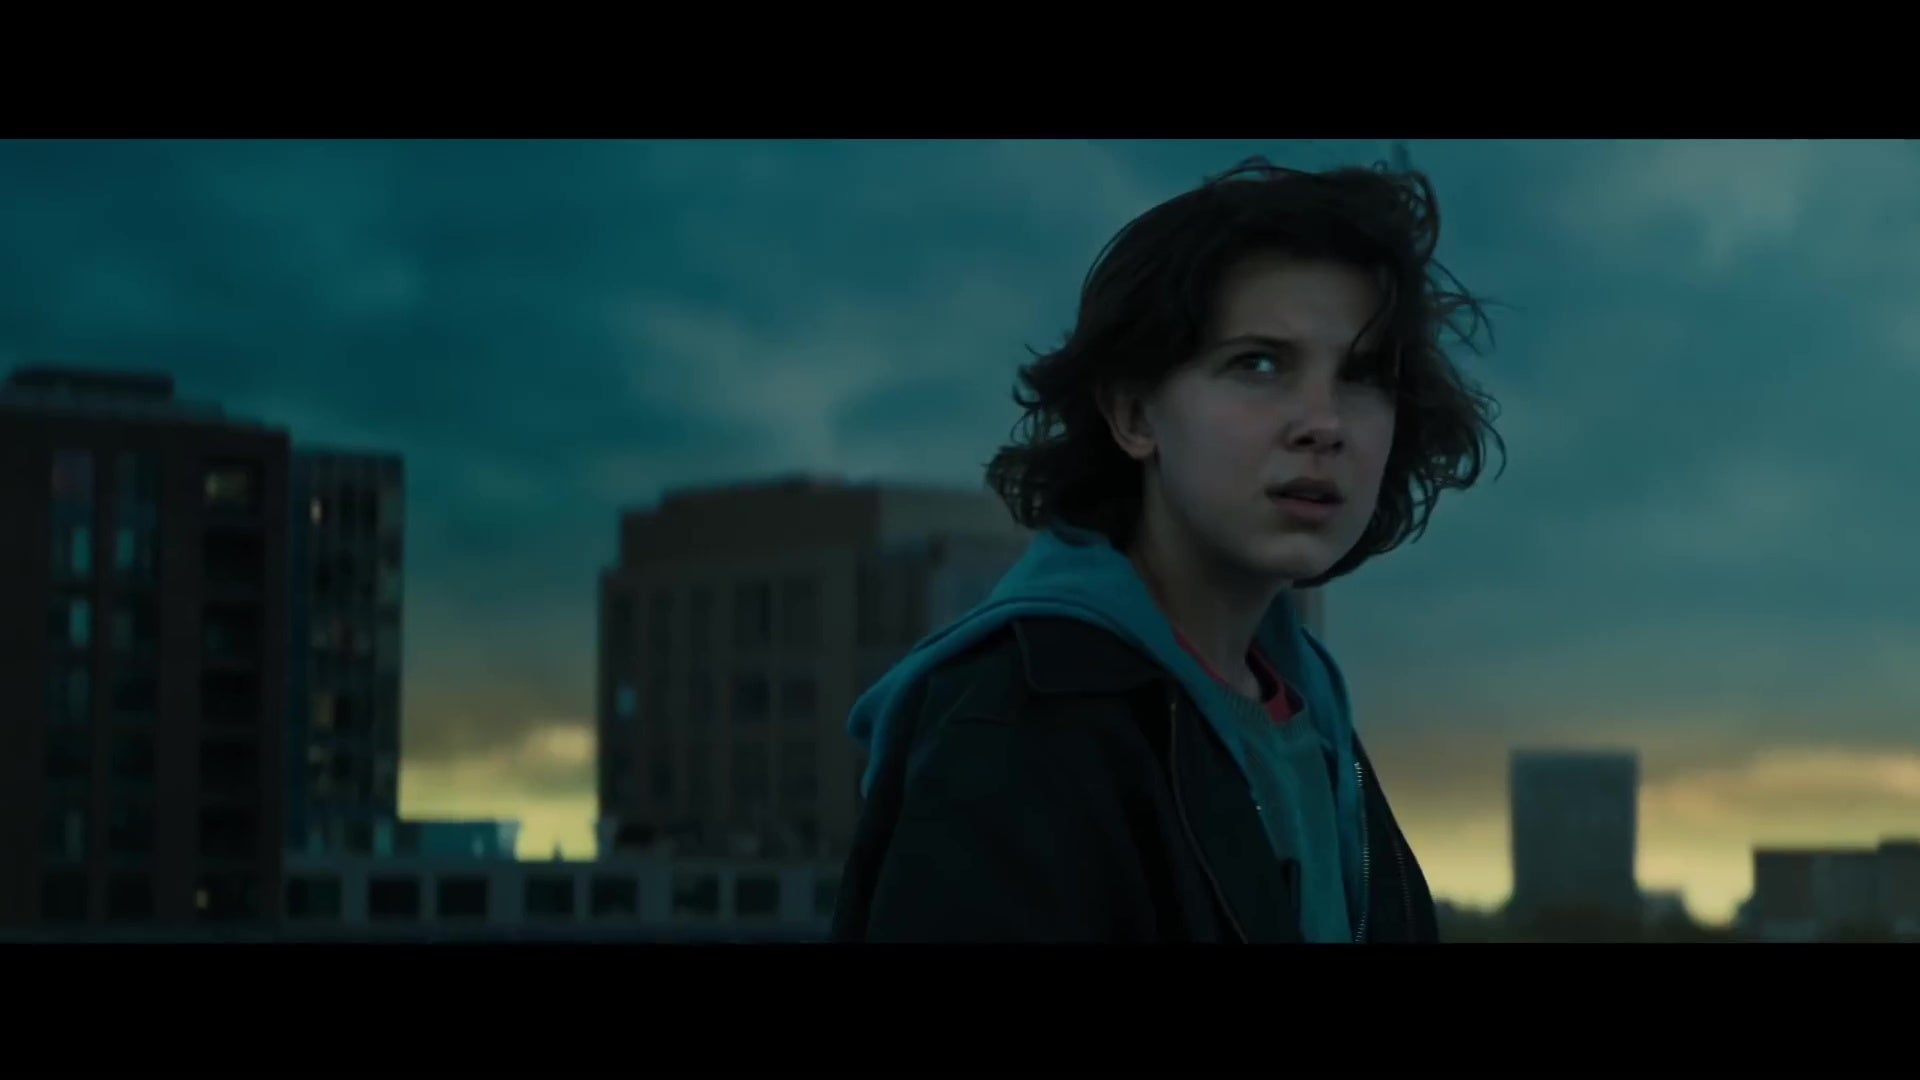 Millie Bobby Brown in Godzilla: King of the Monsters.